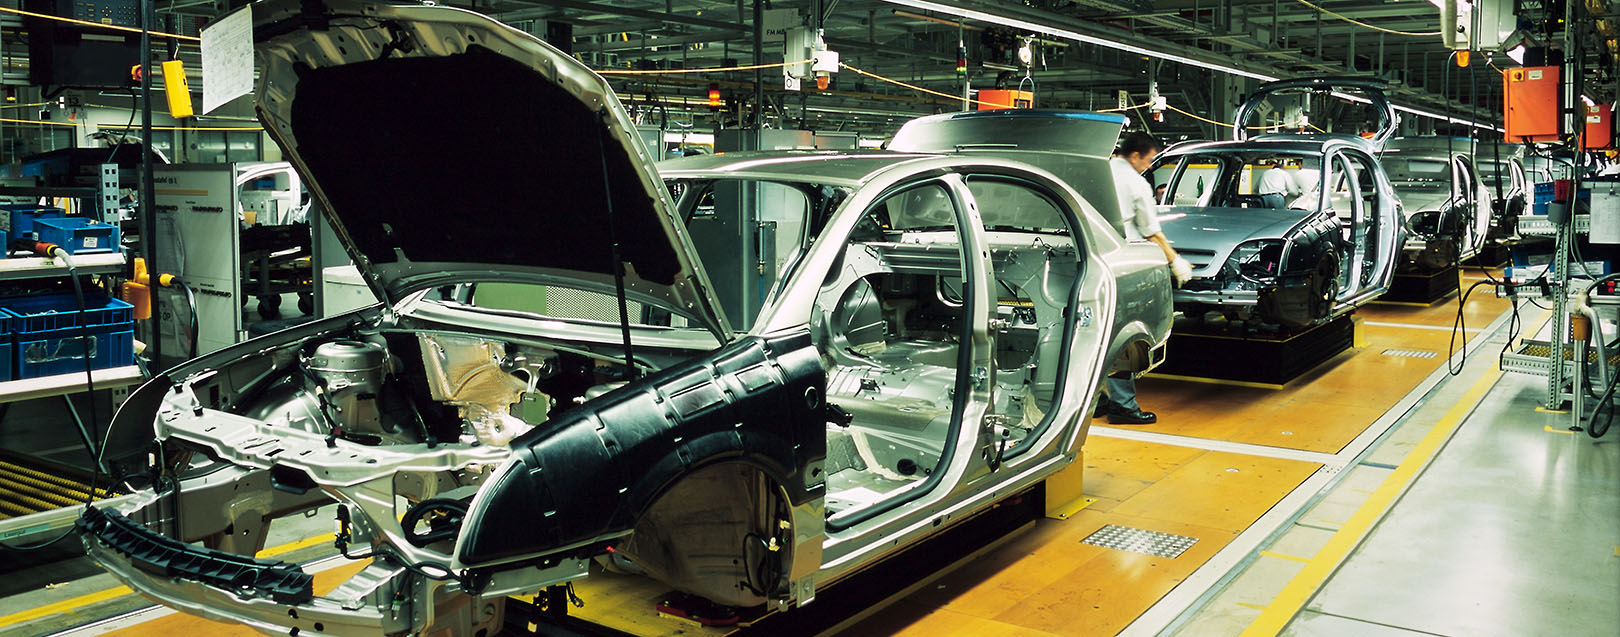 Govt to make automobiles manufacturing key driver of Make in India